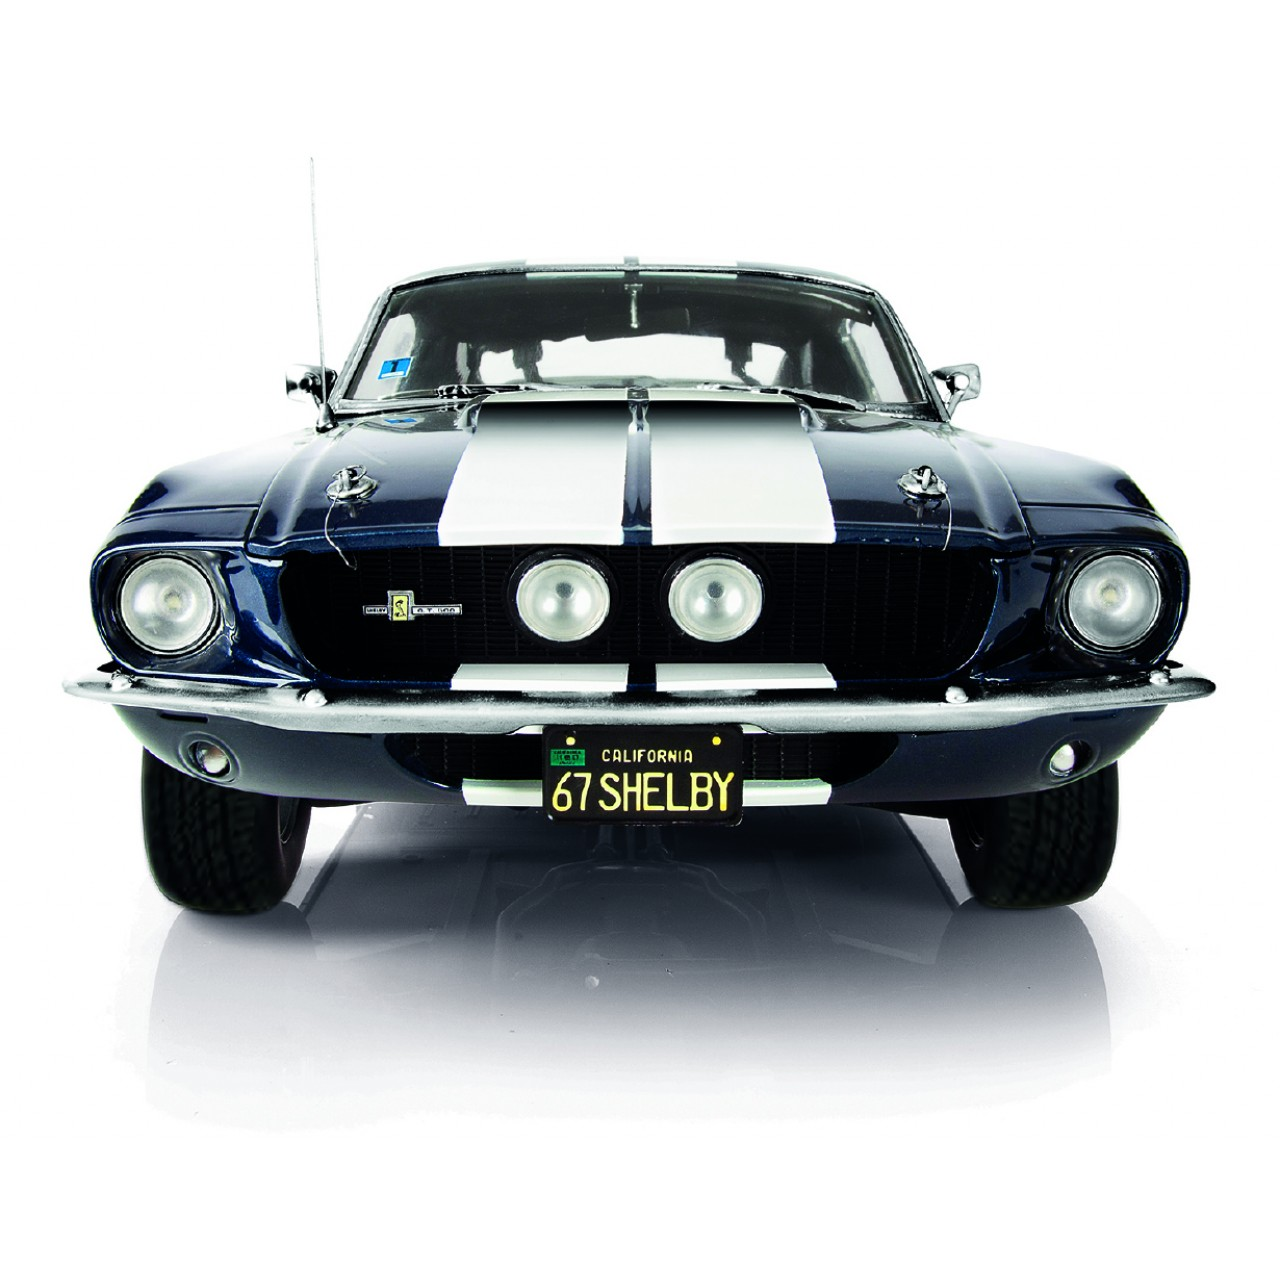 Cars For Kids >> Ford Mustang Shelby GT 500 Model Car Kit | ModelSpace